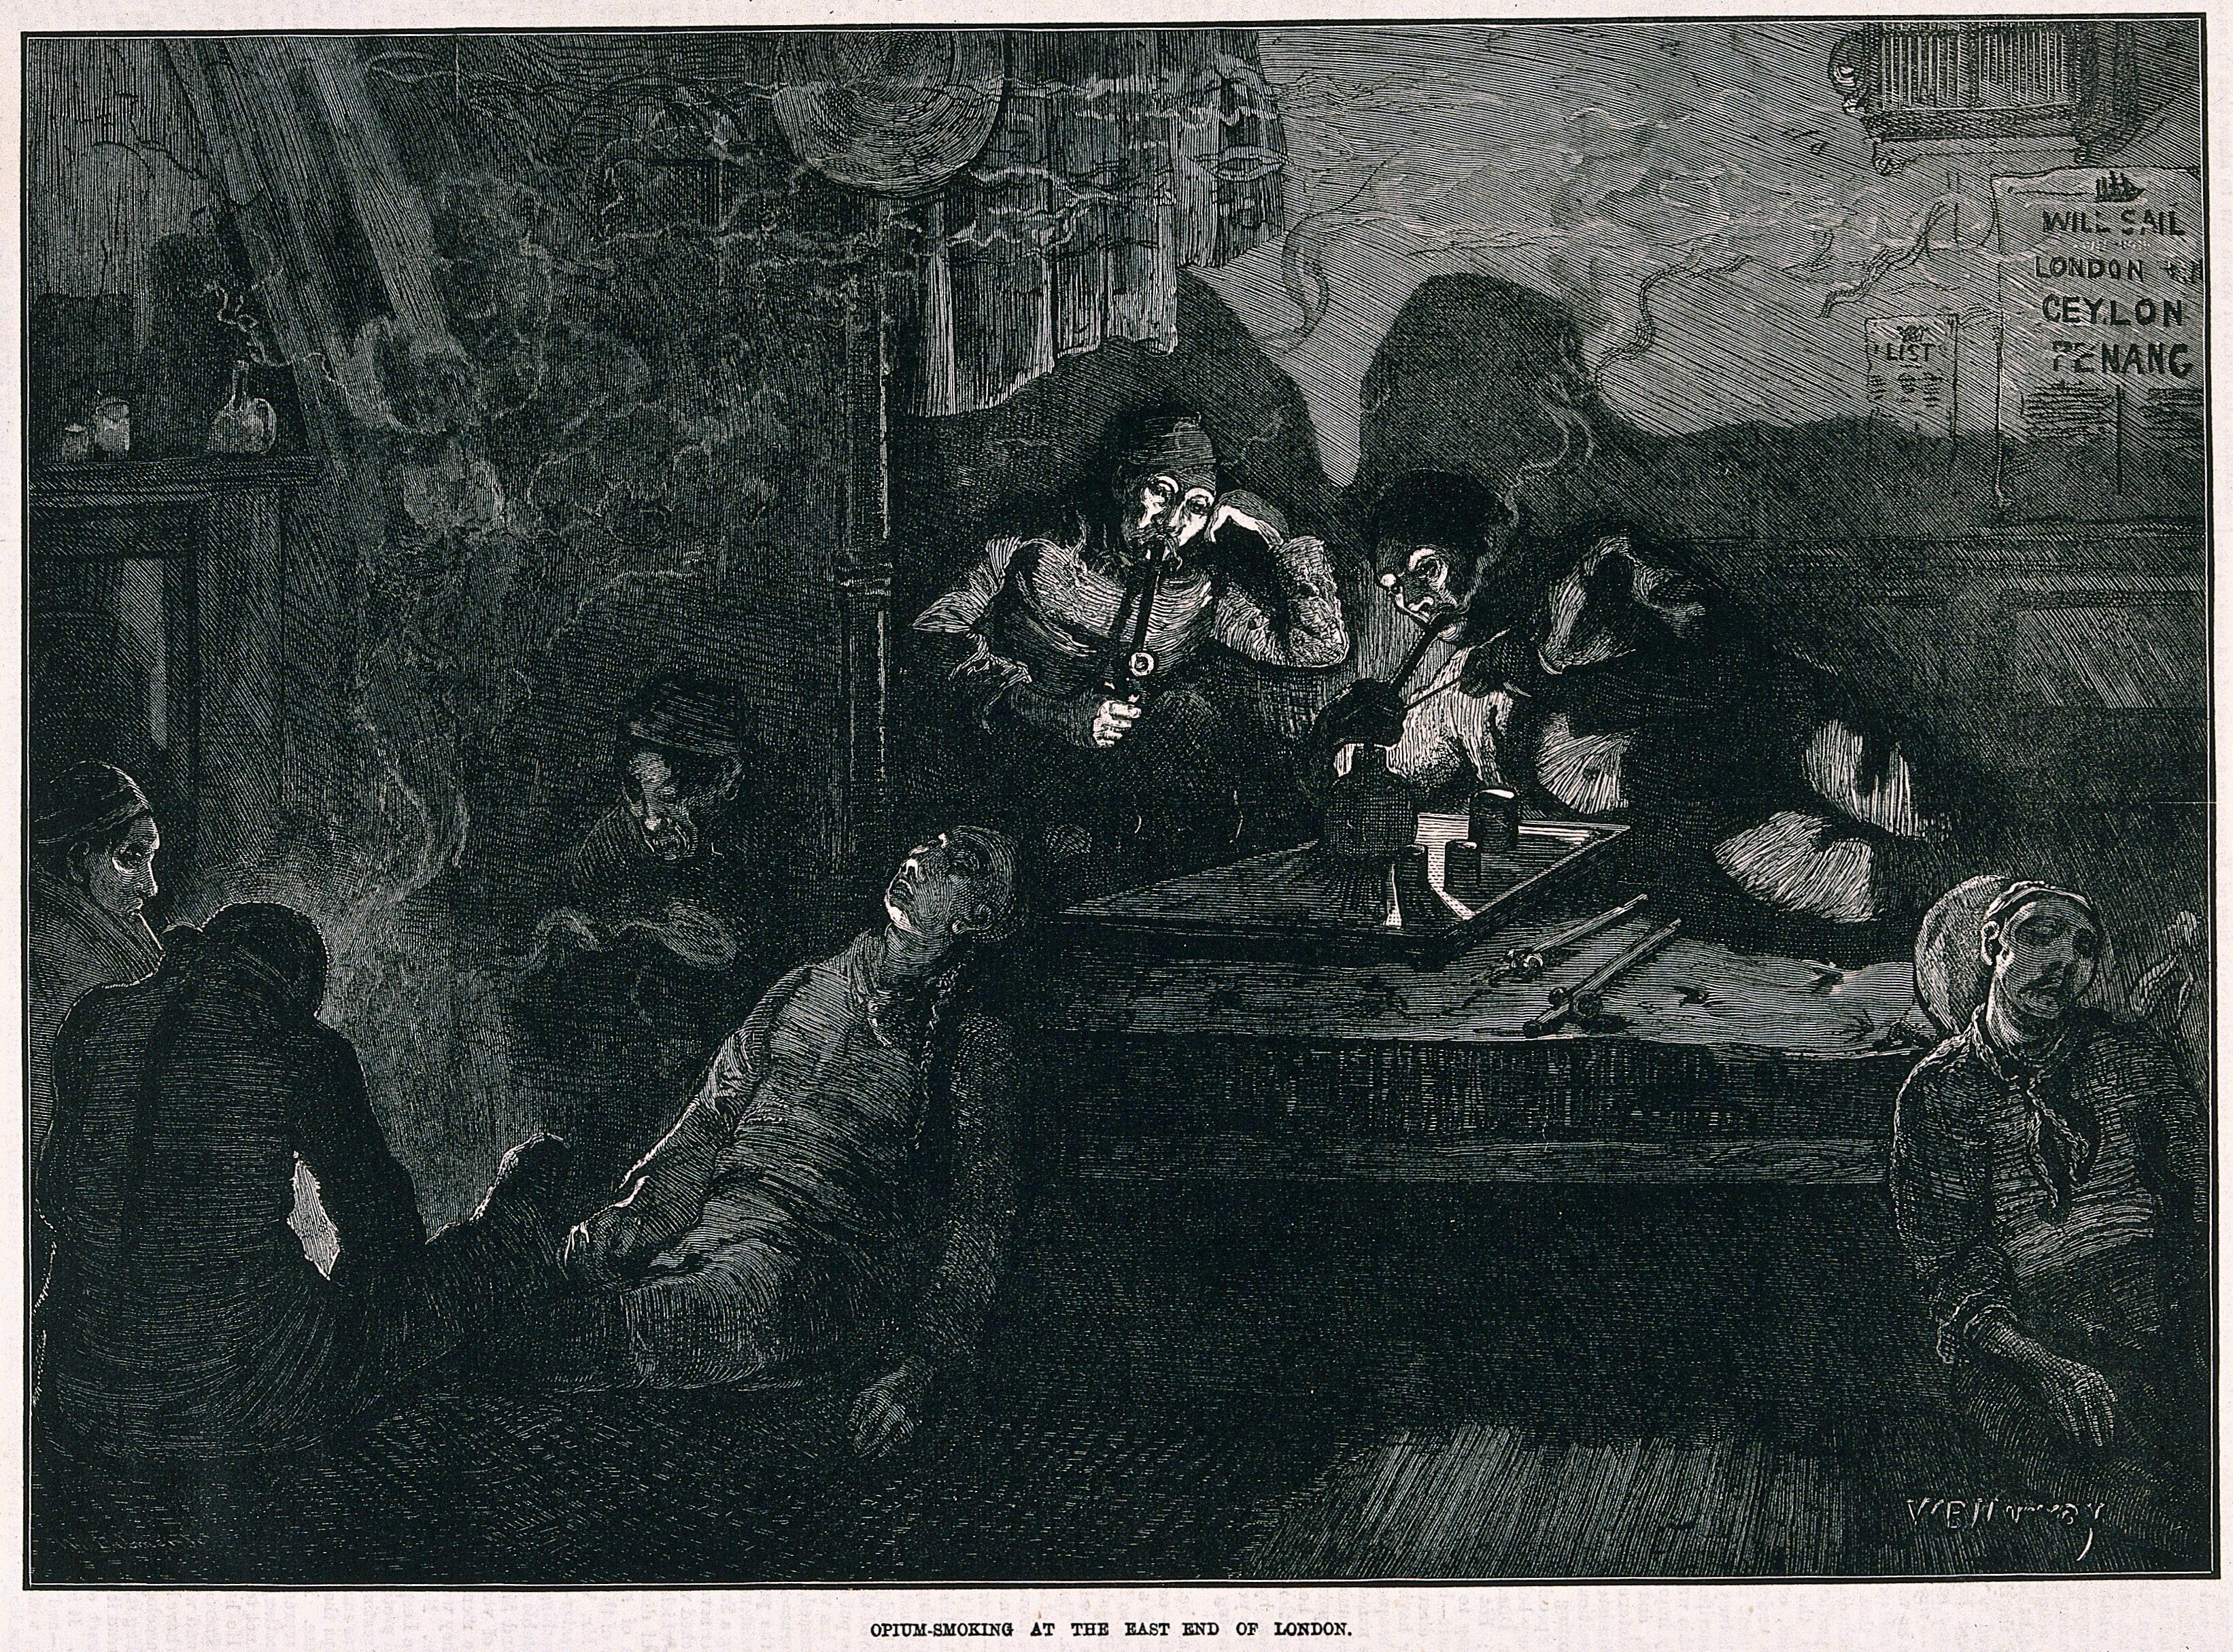 An opium den in London's East End with smokers lying on wooden bunks